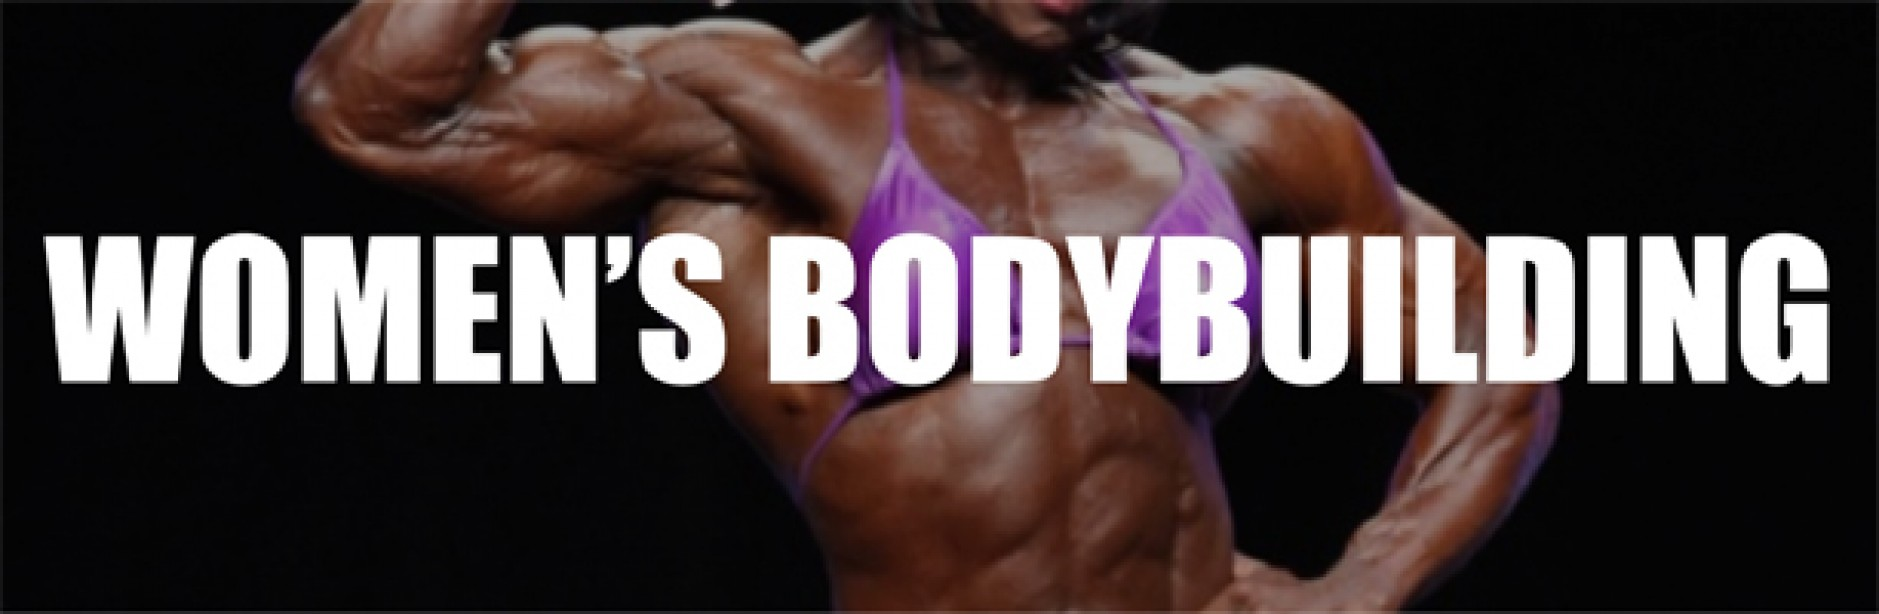 2015 IFBB Chicago Pro Women's Bodybuilding Call Out Report